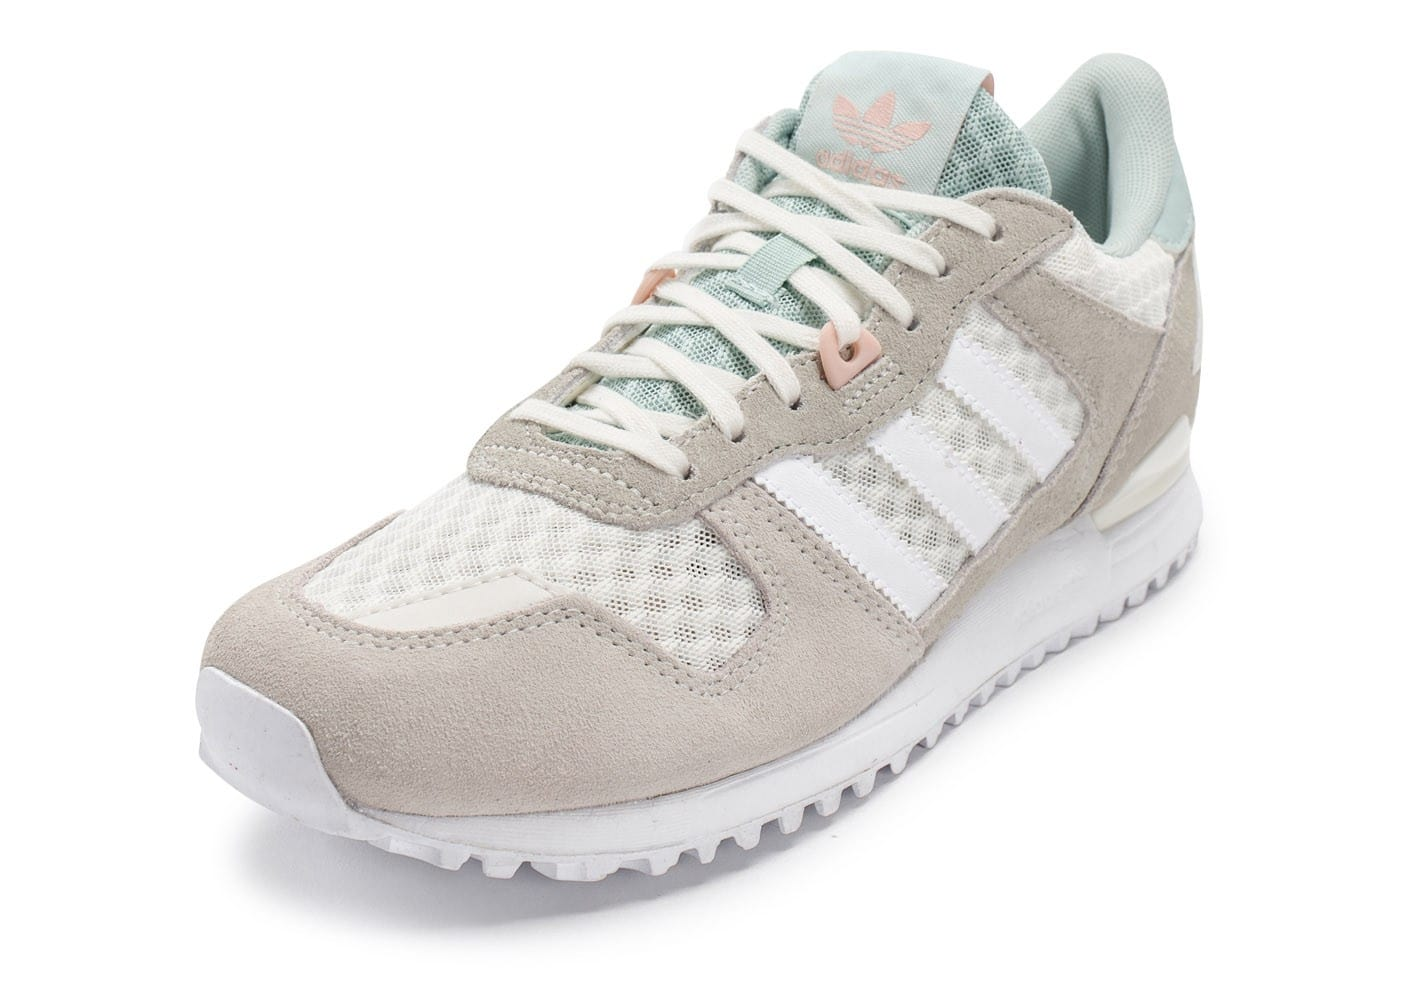 Adidas Zx 700 boutique blanche